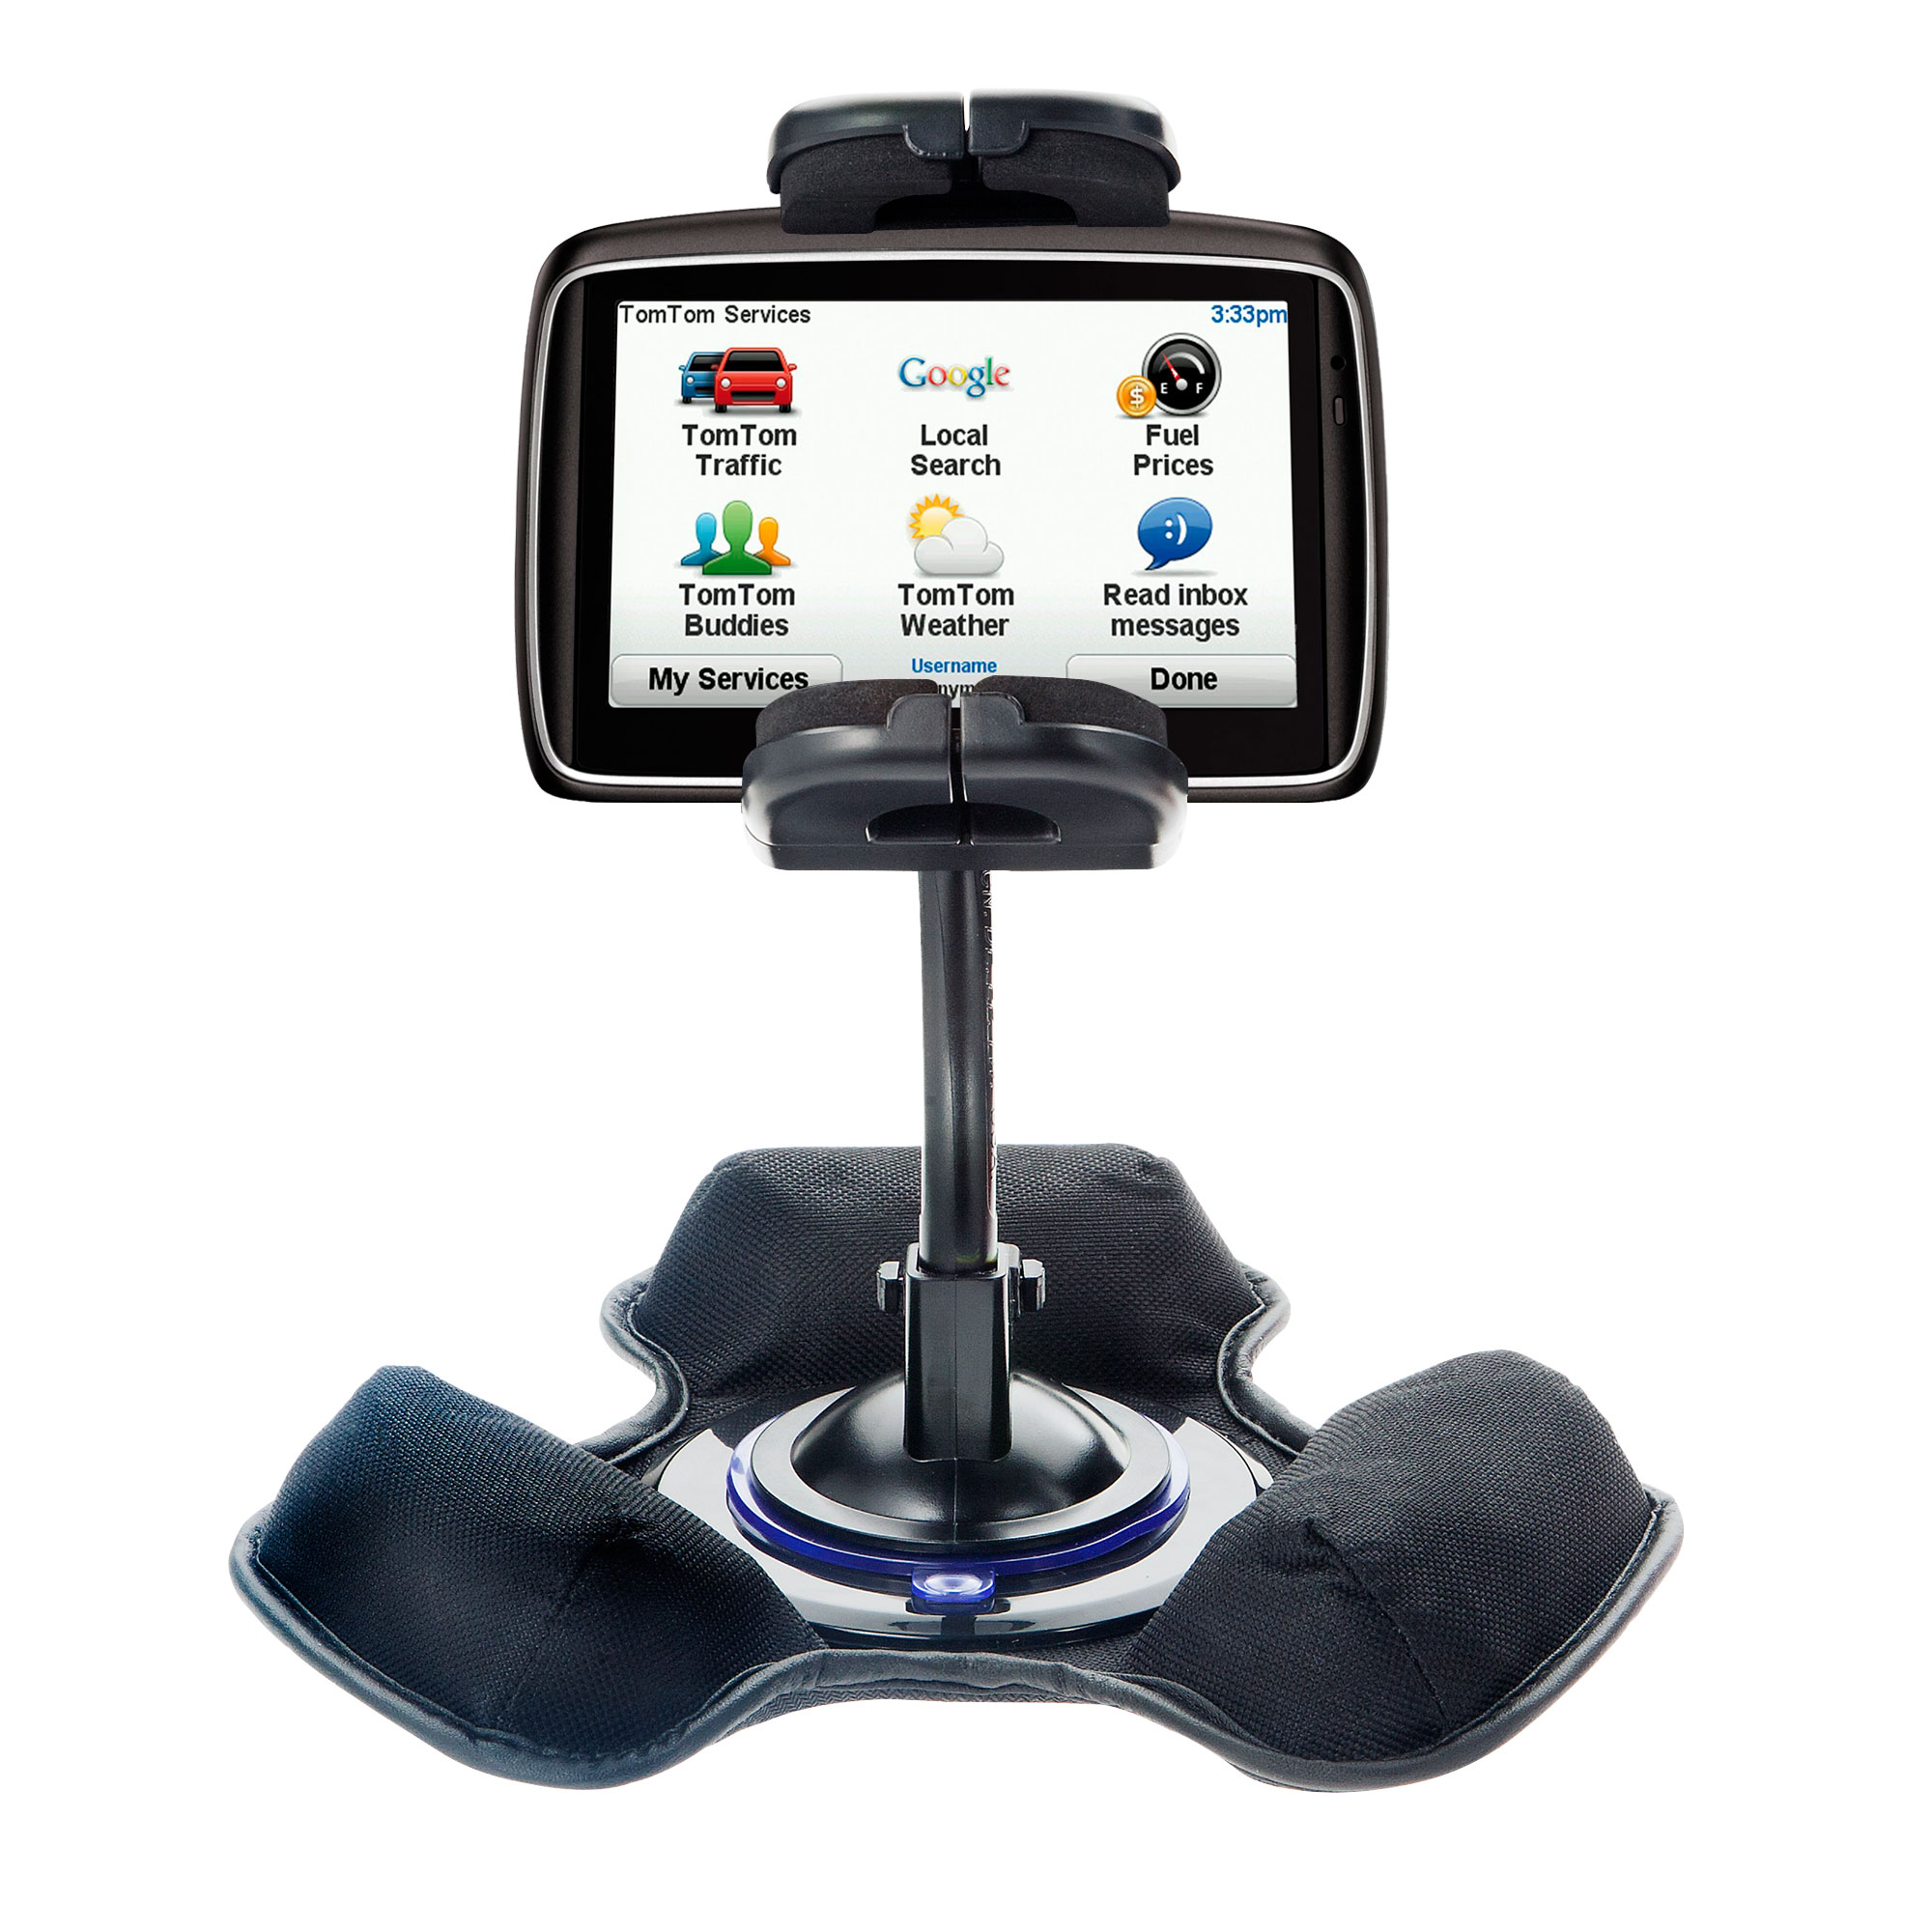 Car / Truck Vehicle Holder Mounting System for TomTom 740 Includes Unique Flexible Windshield Suction and Universal Dashboard Mount Options